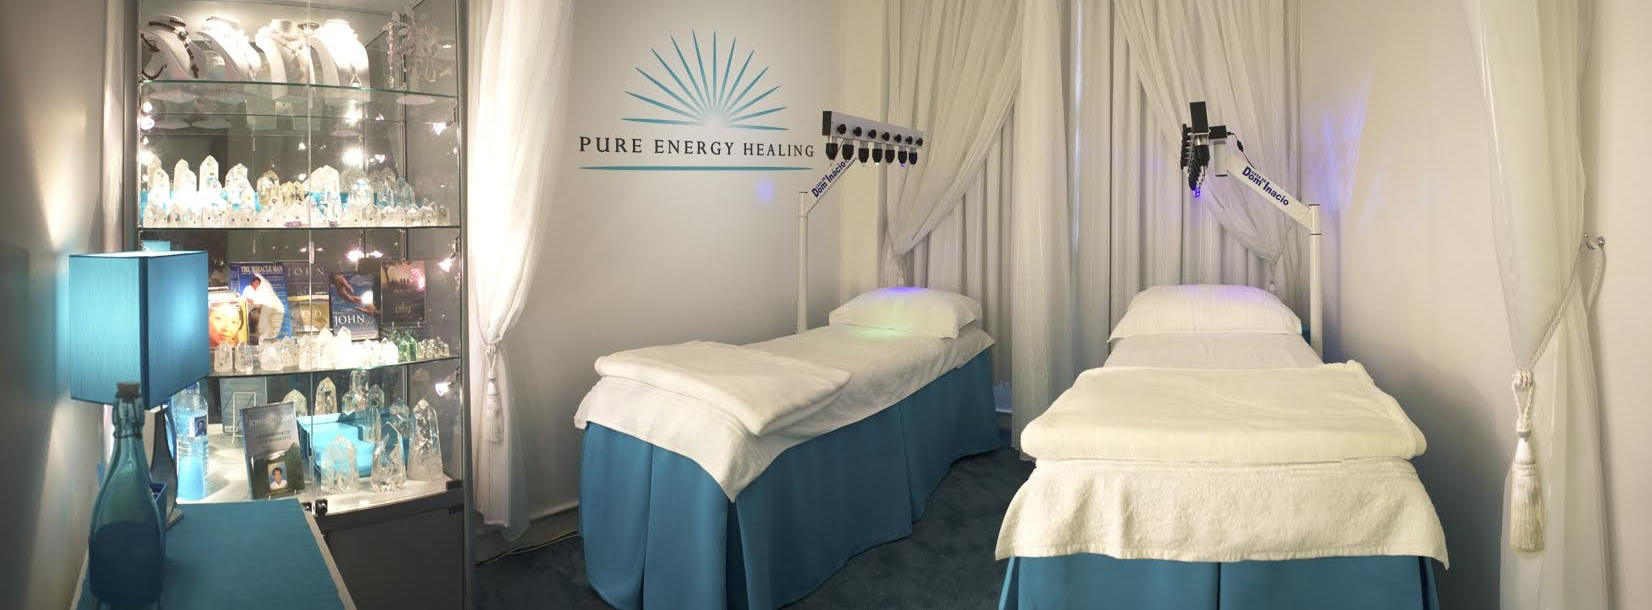 pure-energy-healing-clinic-panorama-sherril-page